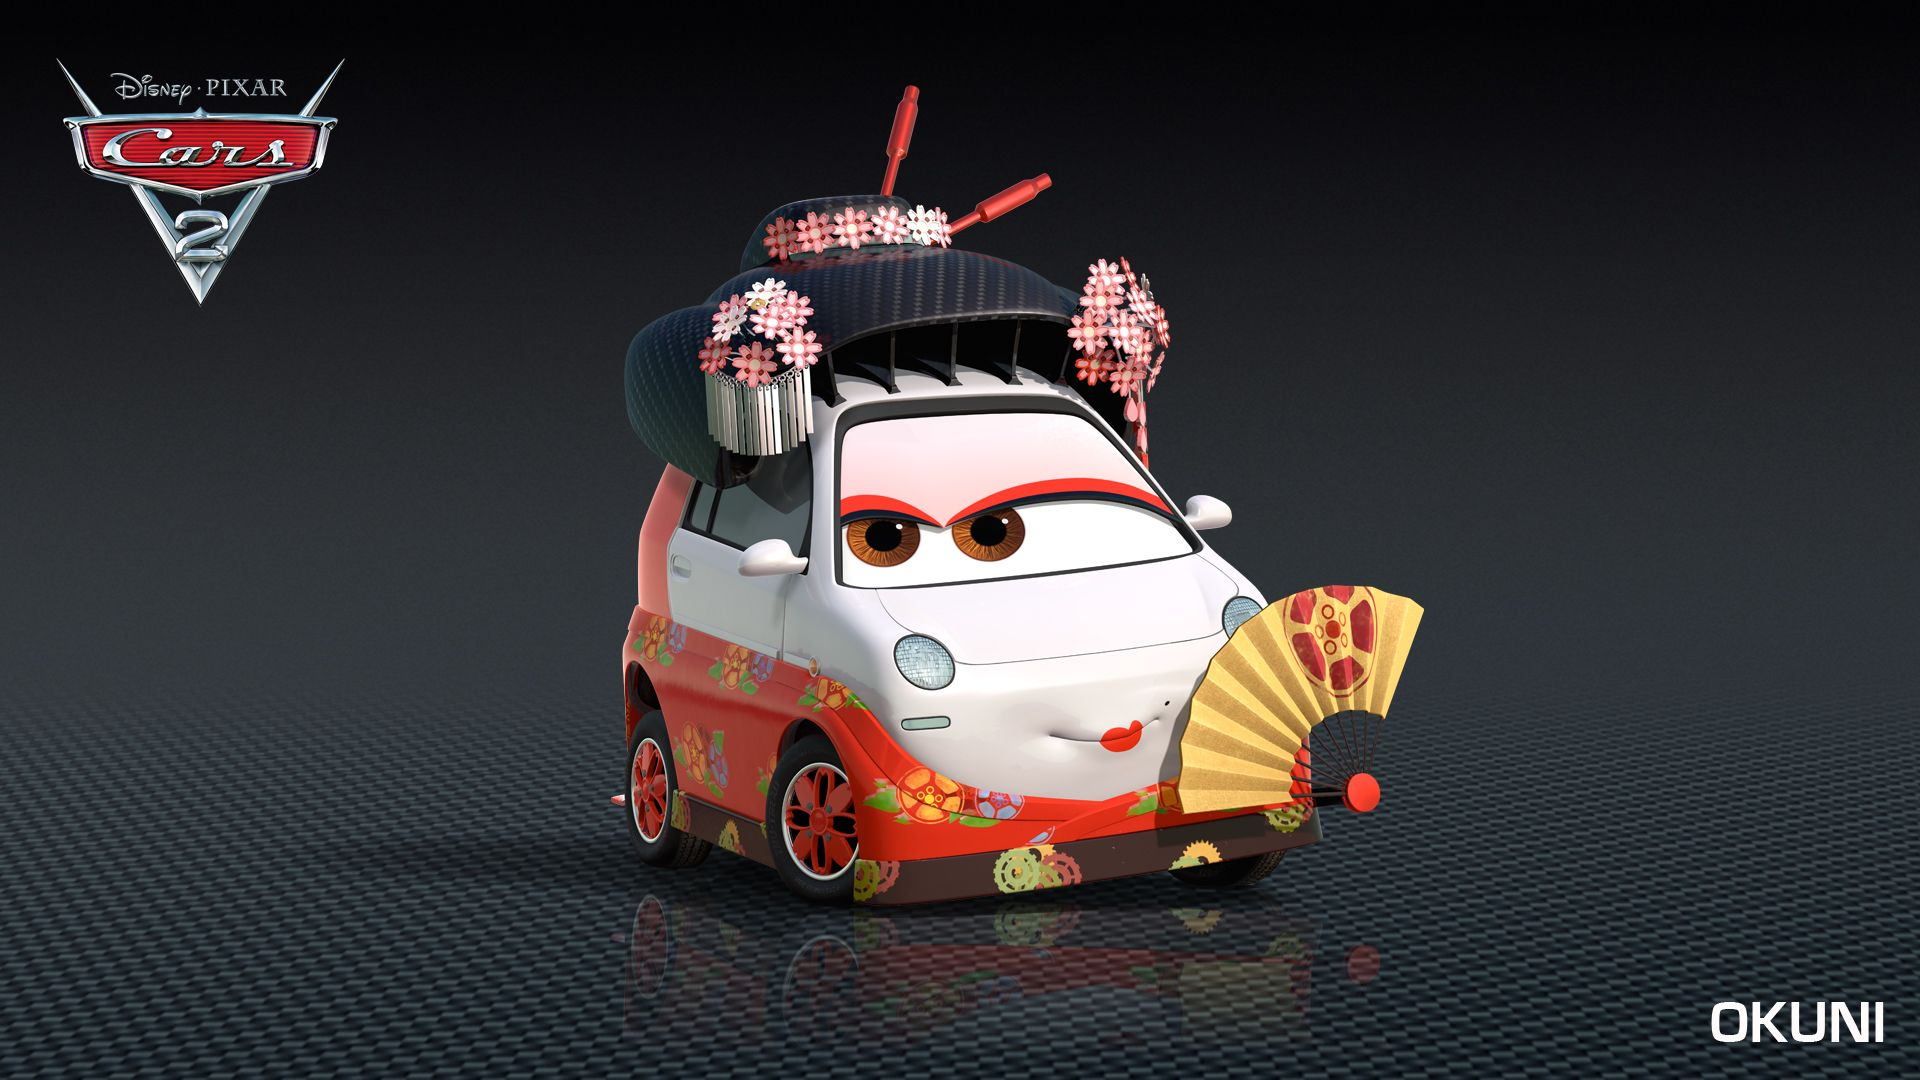 japanese support characters okuni cars 2 - Cars The Movie 2 Characters